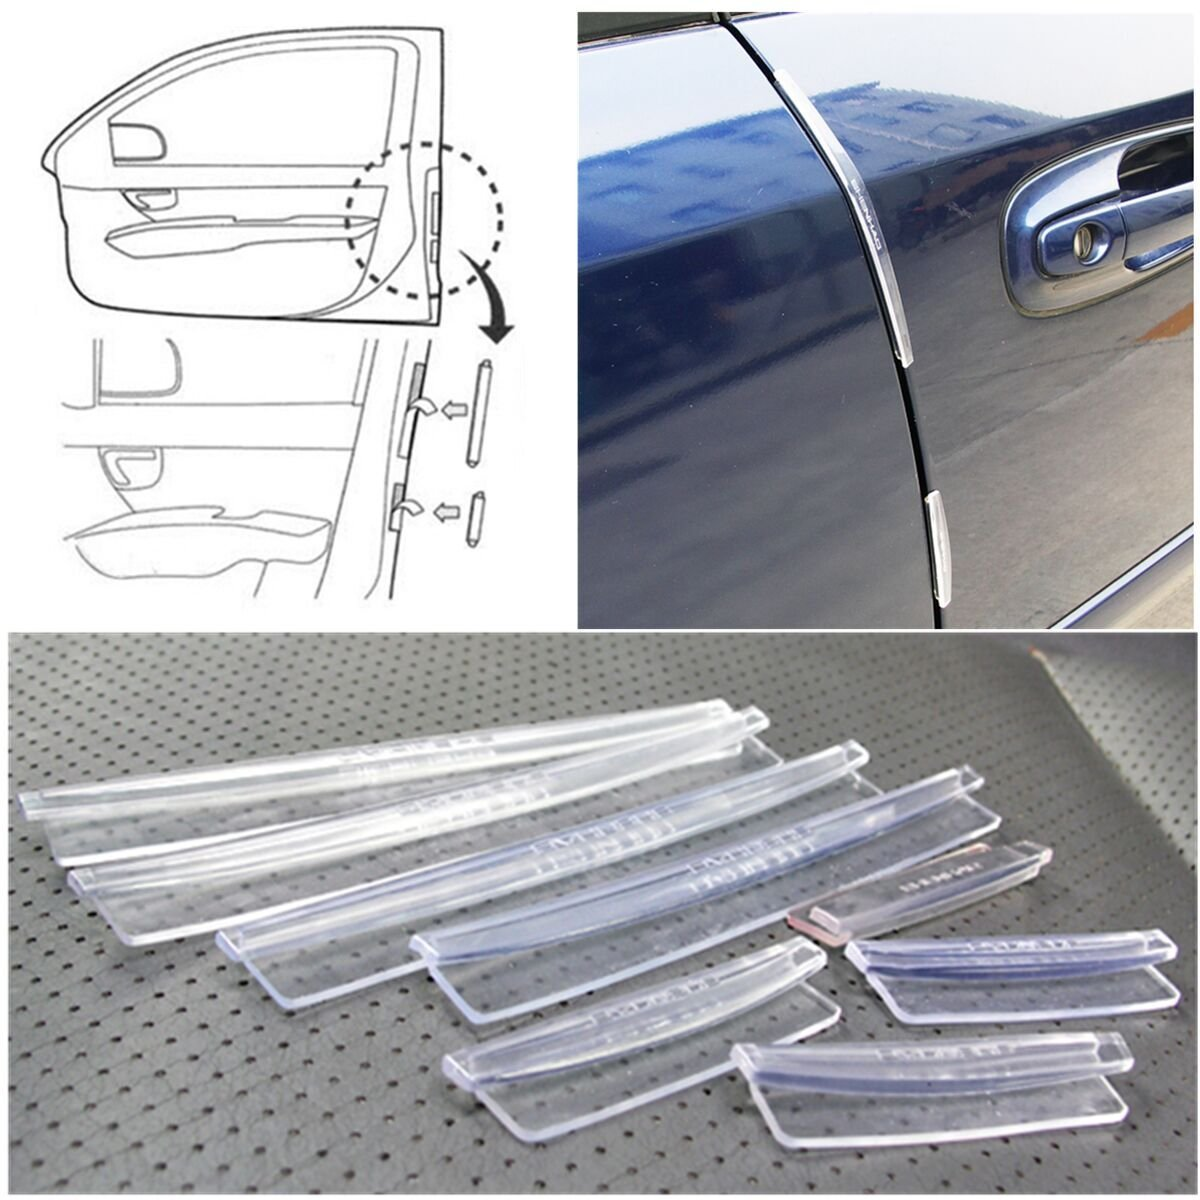 White EKIND 4 Pcs Streamlined Self Adhesive Car Side Door Guard Edge Protector Fit for Most Car